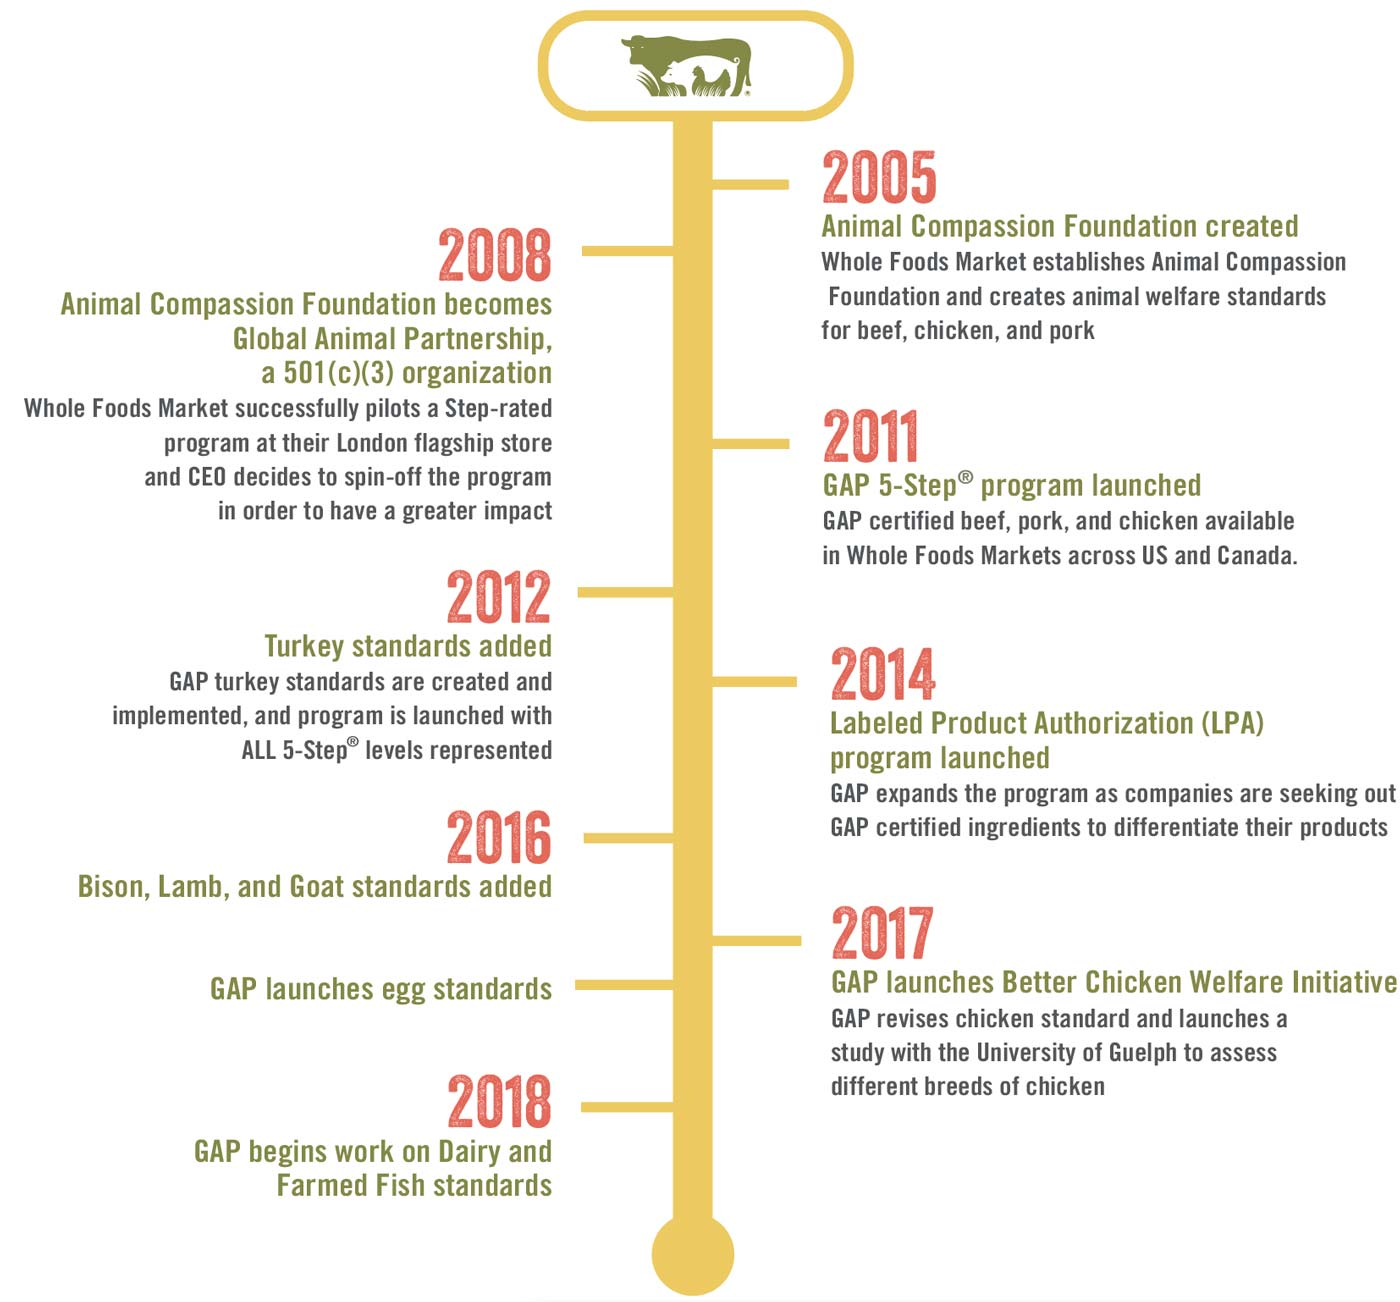 Global Animal Partnership History Timeline